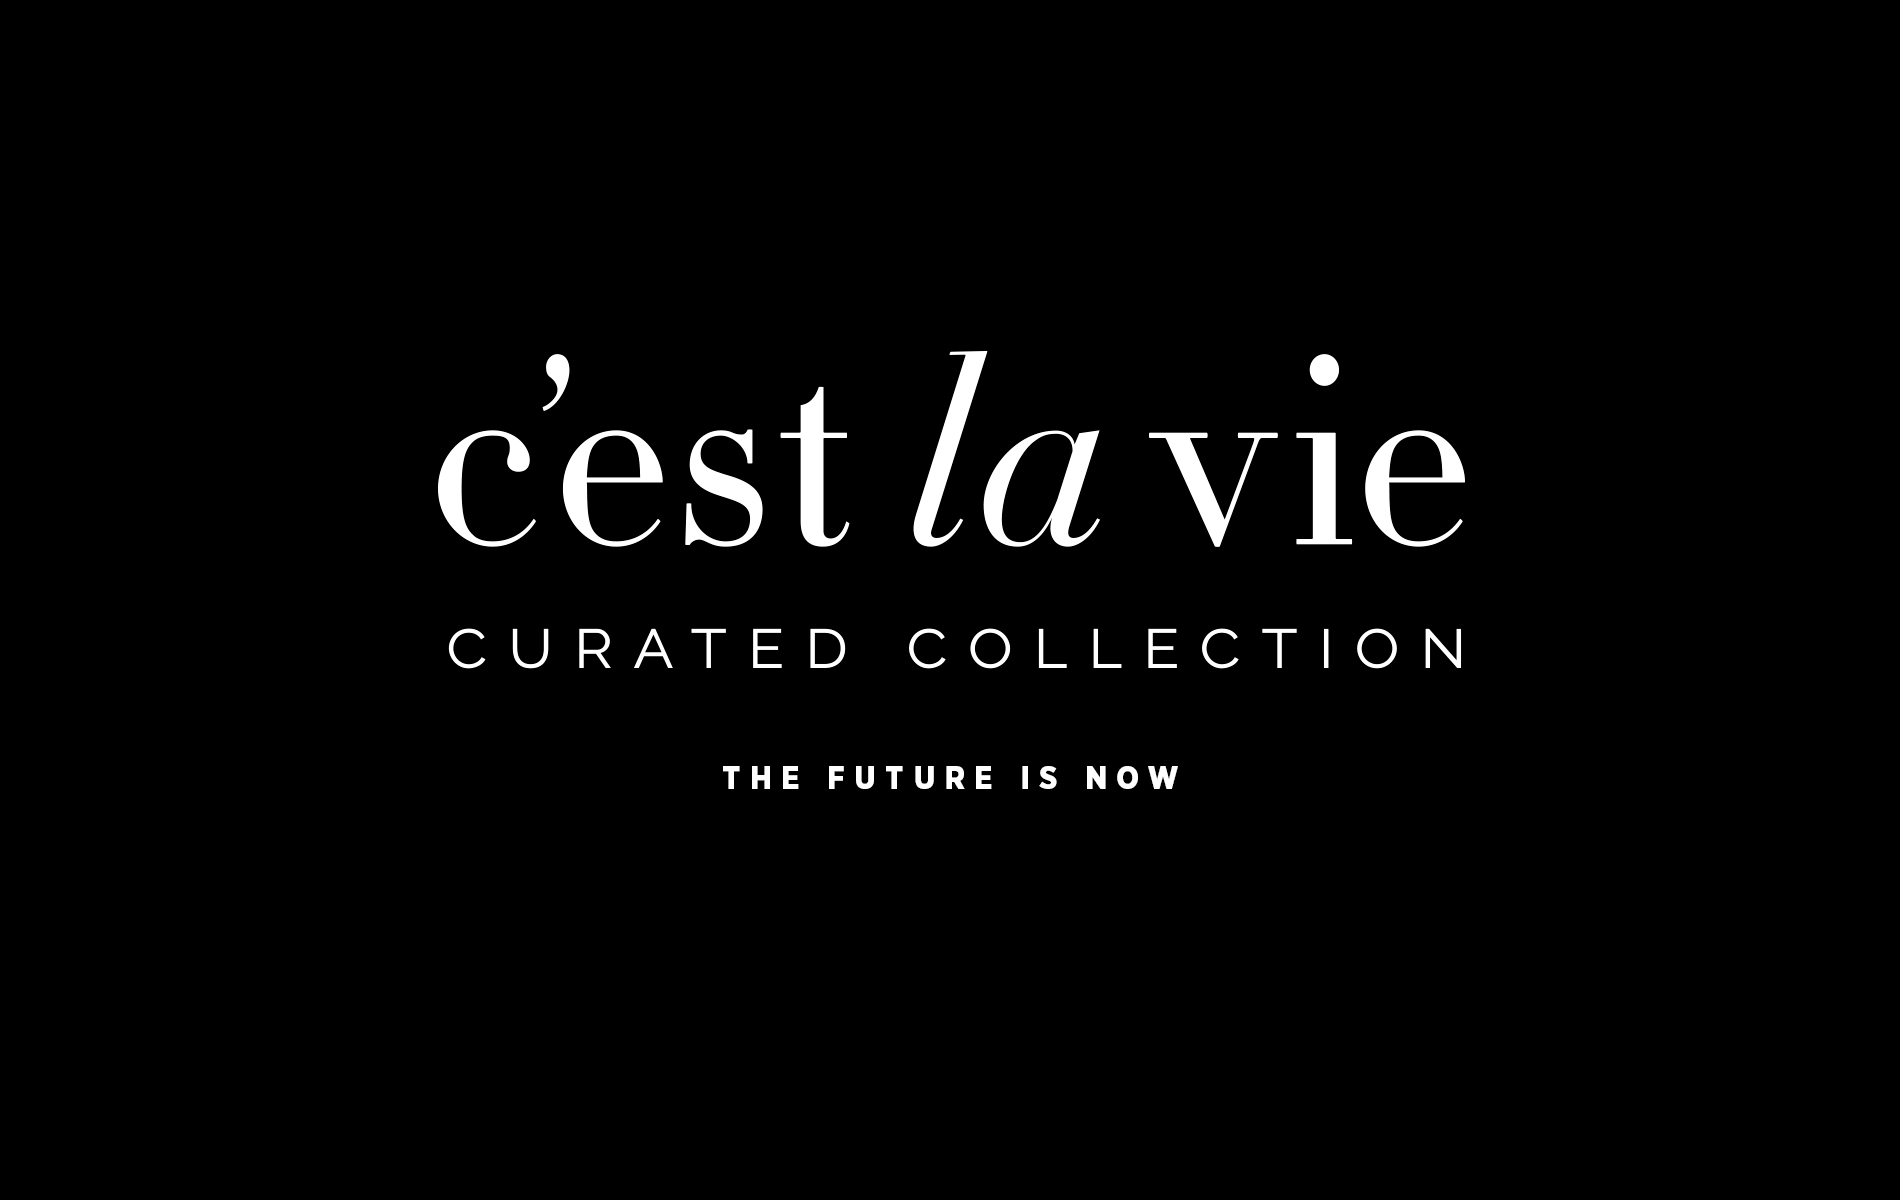 VIE Magazine C'est la VIE A Curated Collection, The Future is Now, February 2019 Luxury Homes & Technology issue